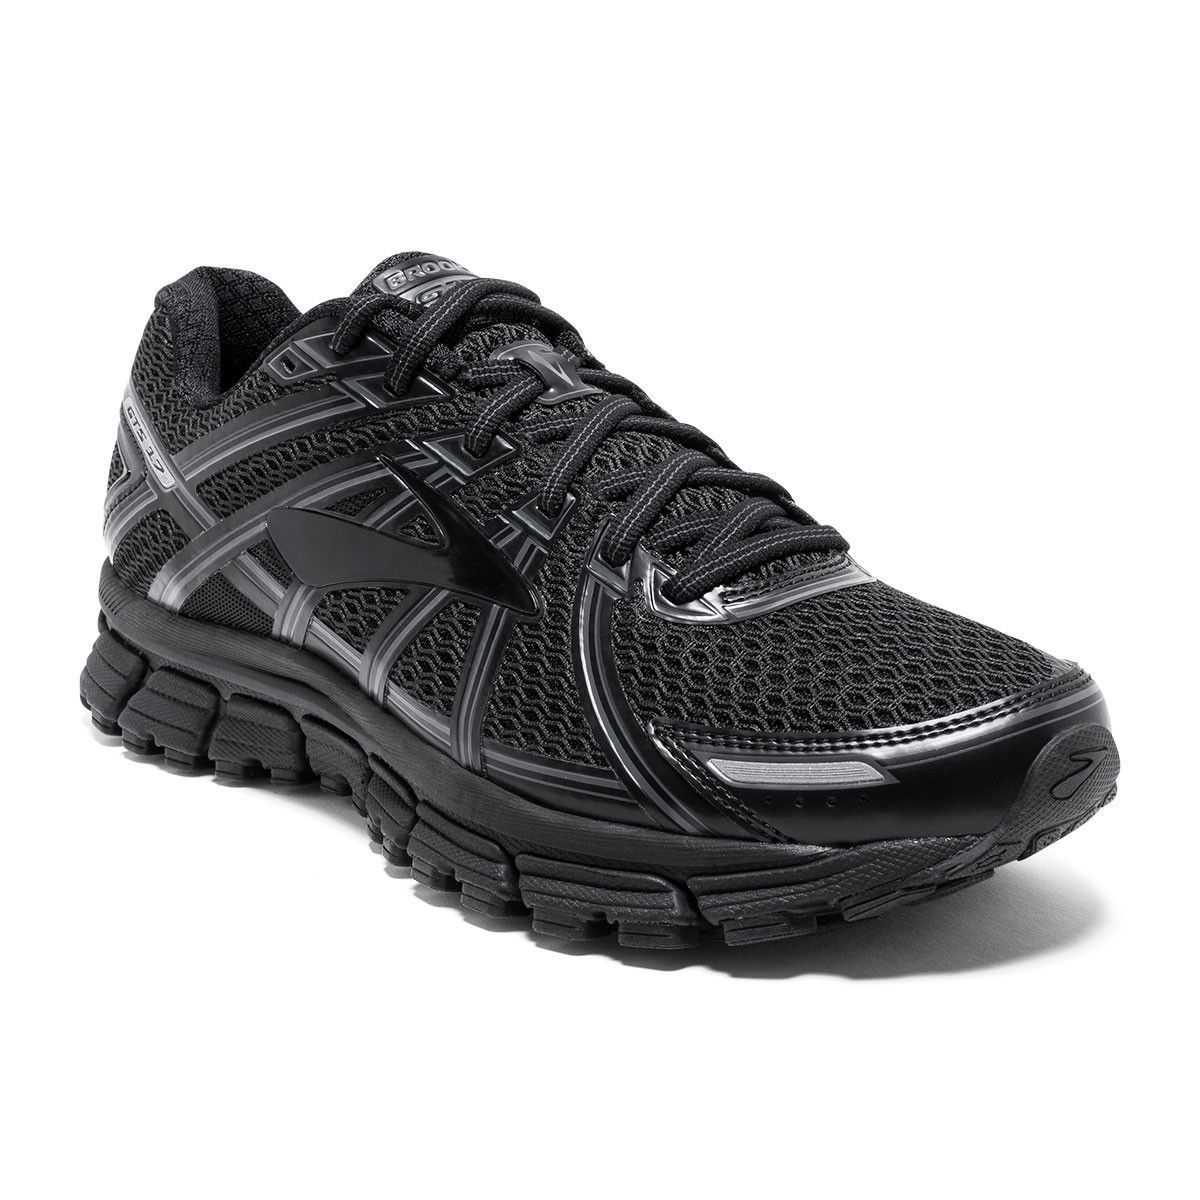 reputable site c0a23 ac1ab SCARPA RUNNING BROOKS ADRENALINE GTS 17 WOMEN black anthracite 068.jpg